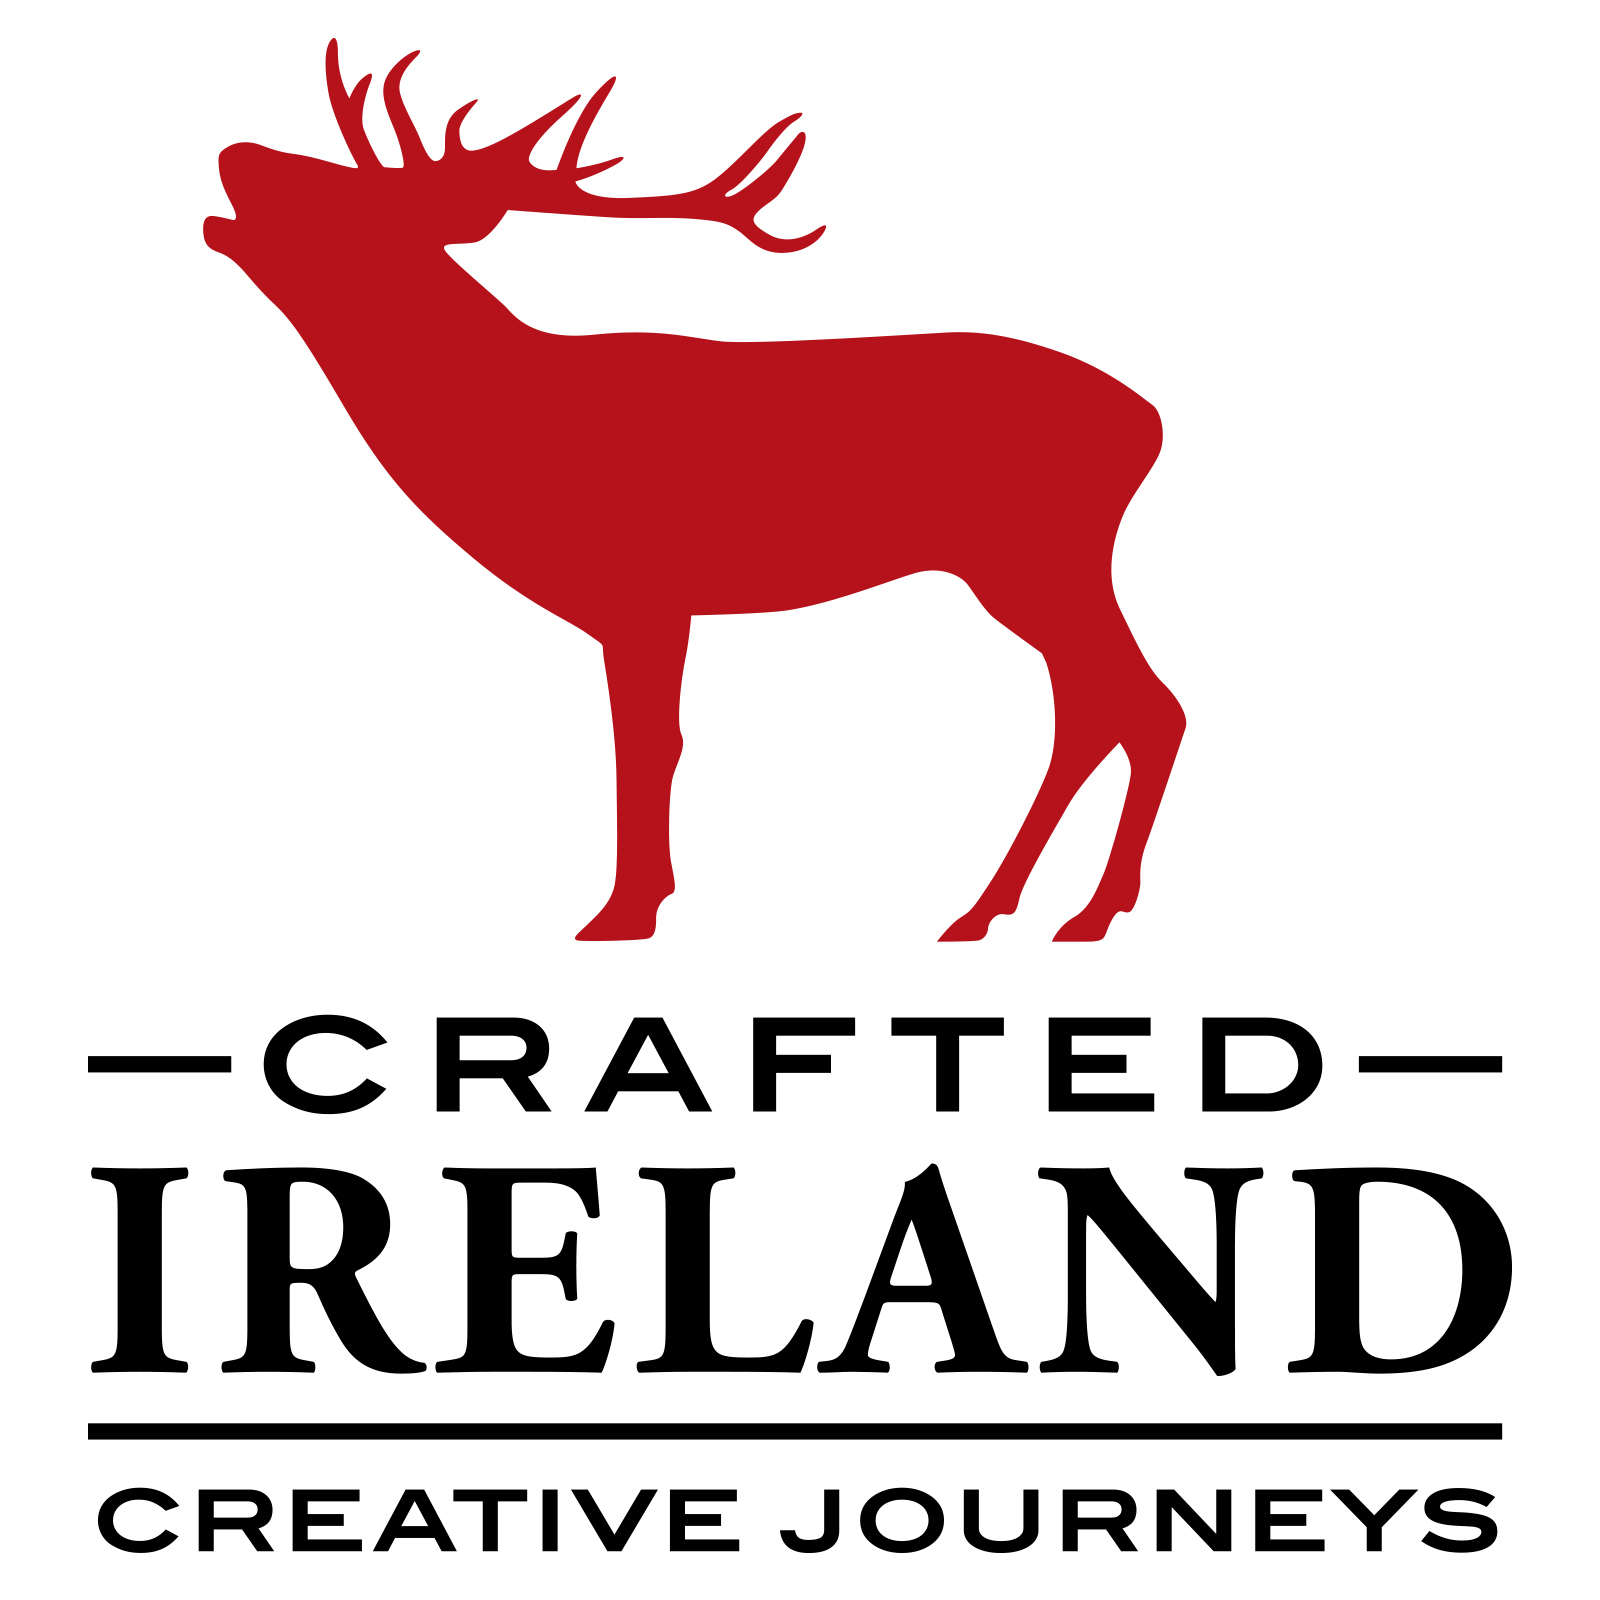 CraftedIreland_CreativeJourneys.jpg